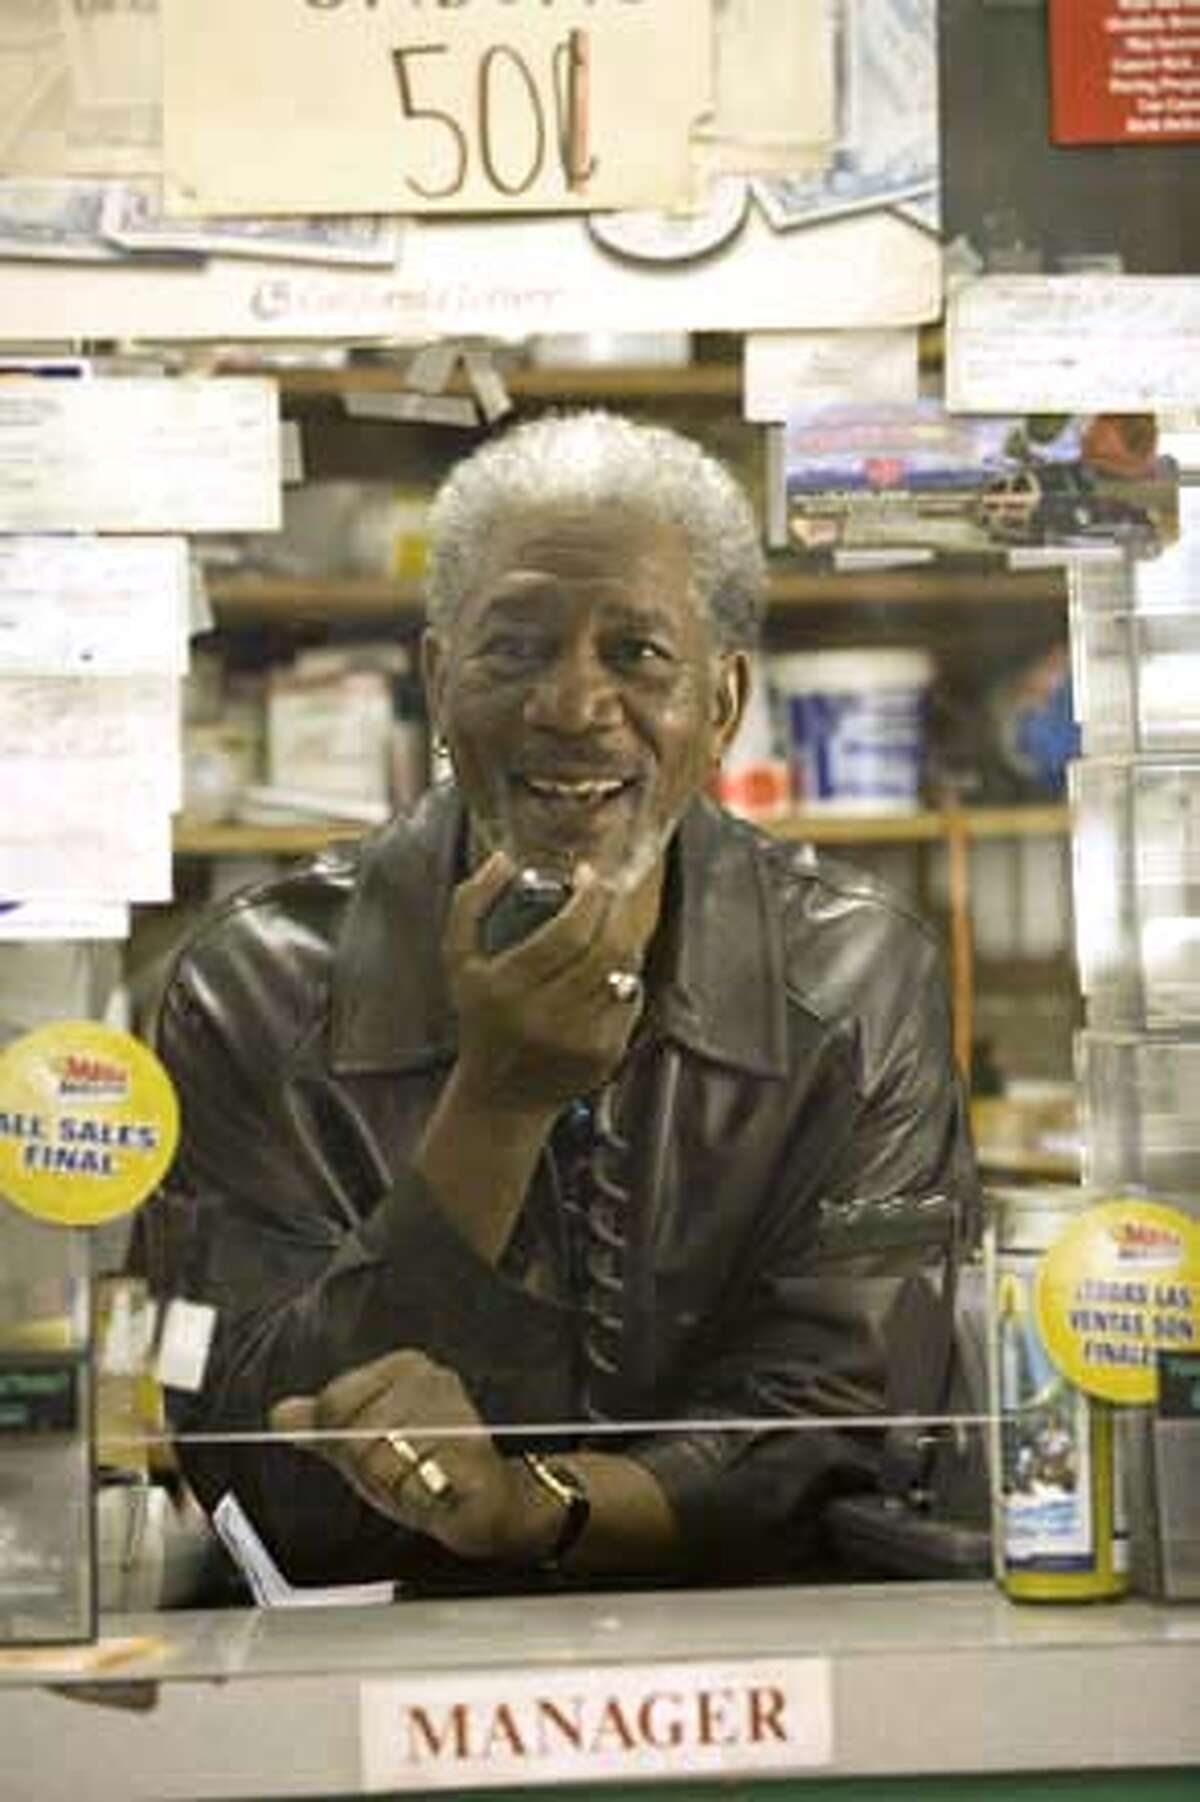 Morgan Freeman and director Brad Silberling, 10 ITEMS OR LESS is an intimately-scaled, two-character comedy in which Freeman plays a major movie star whose pickiness with his projects accounts for a lengthy absence from the screen.